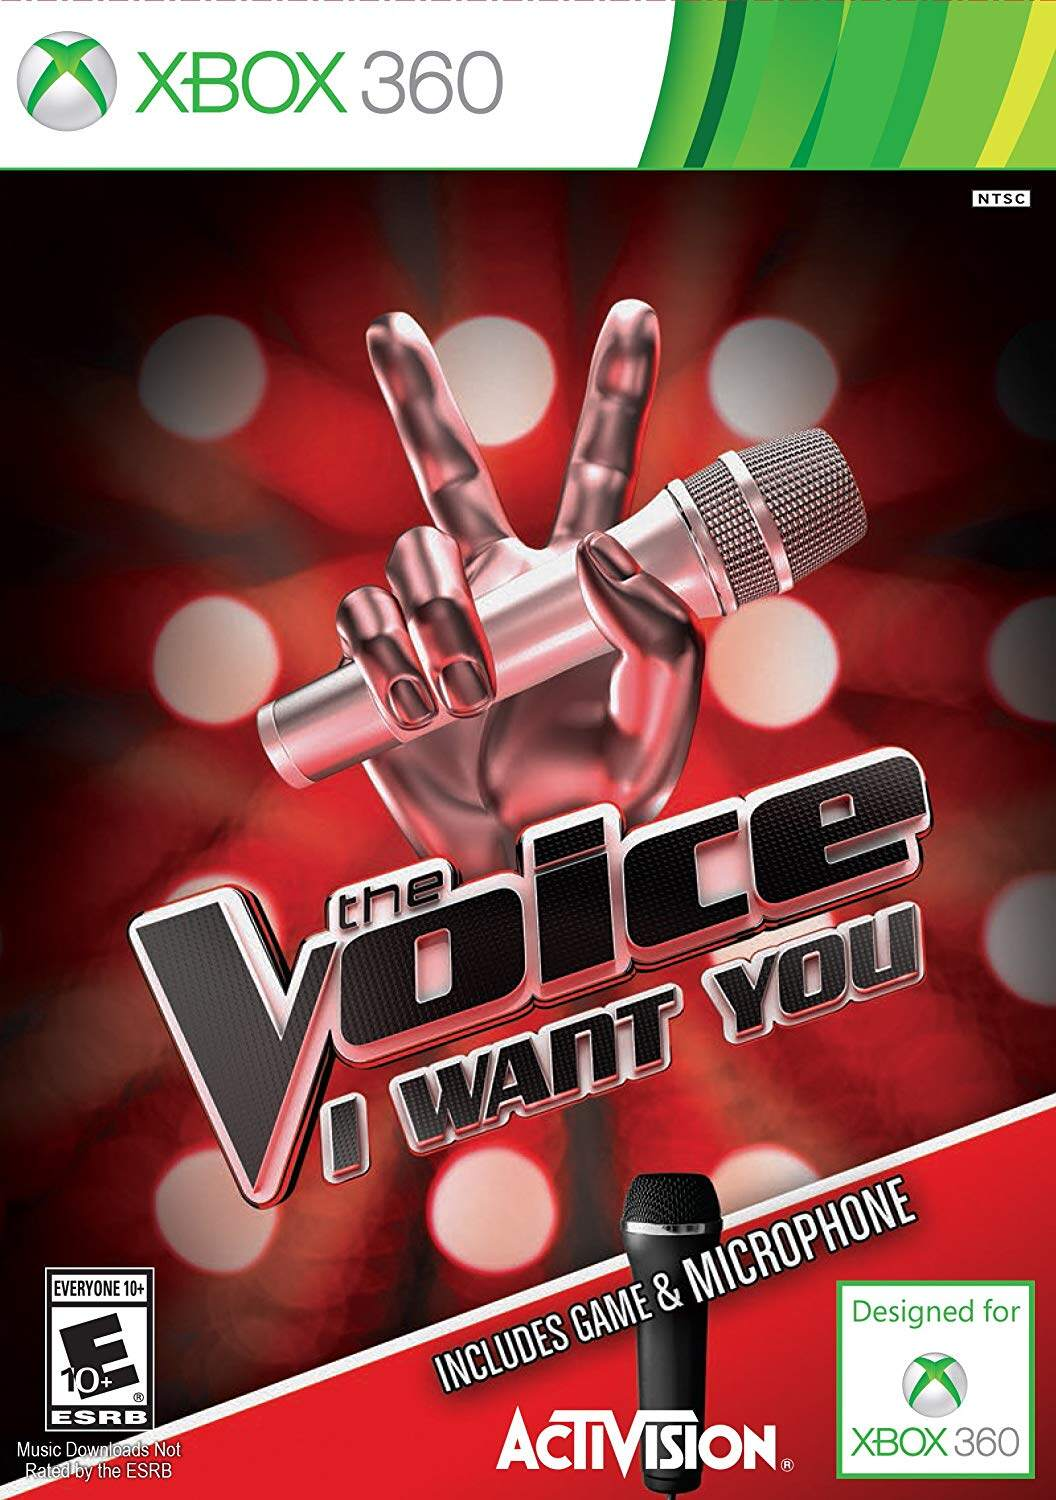 XBOX 360 The Voice I Want You